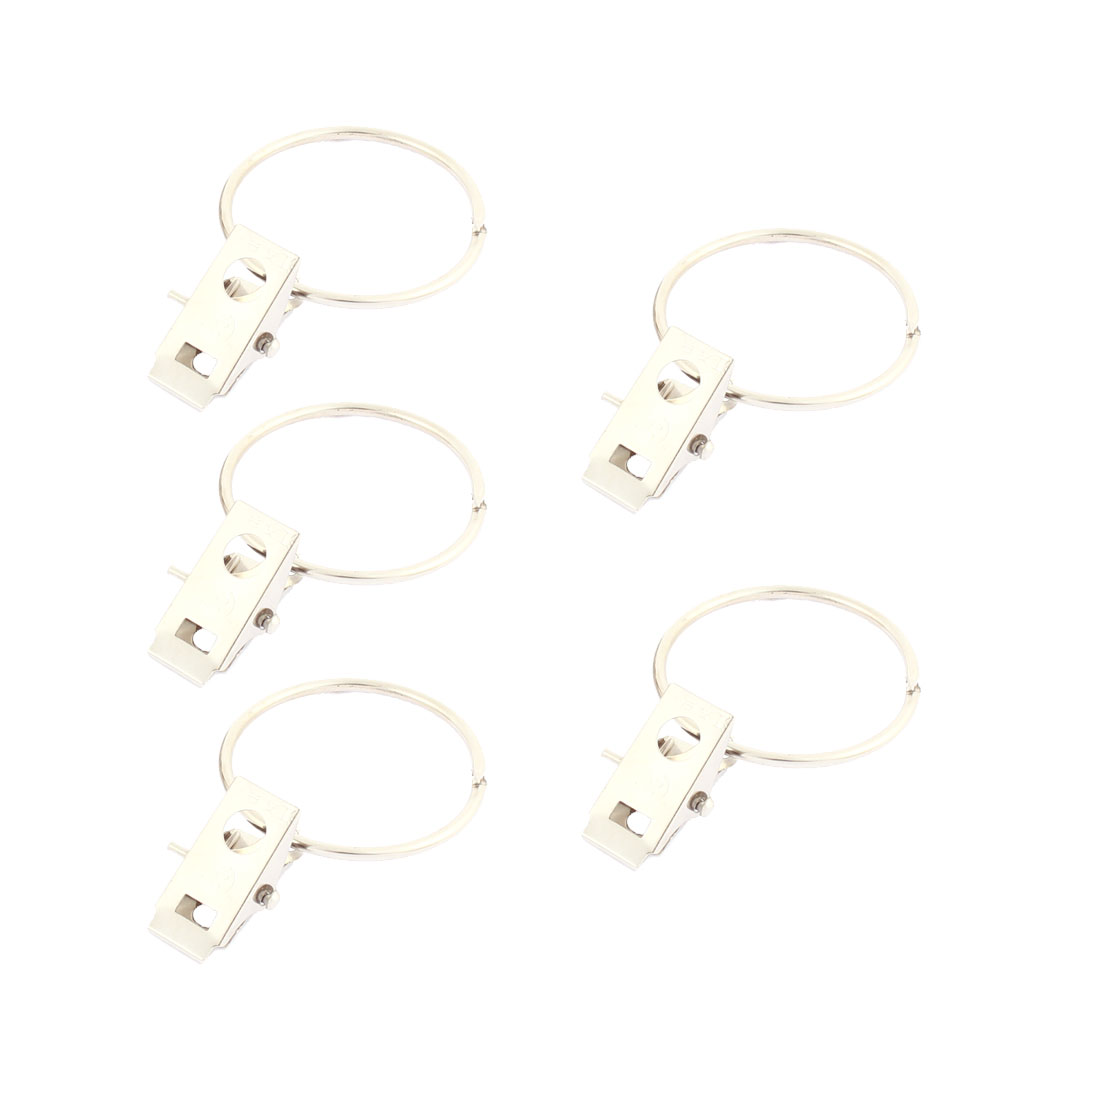 Window Split Ring Sprung Curtain Clips Silver Tone 8Pcs